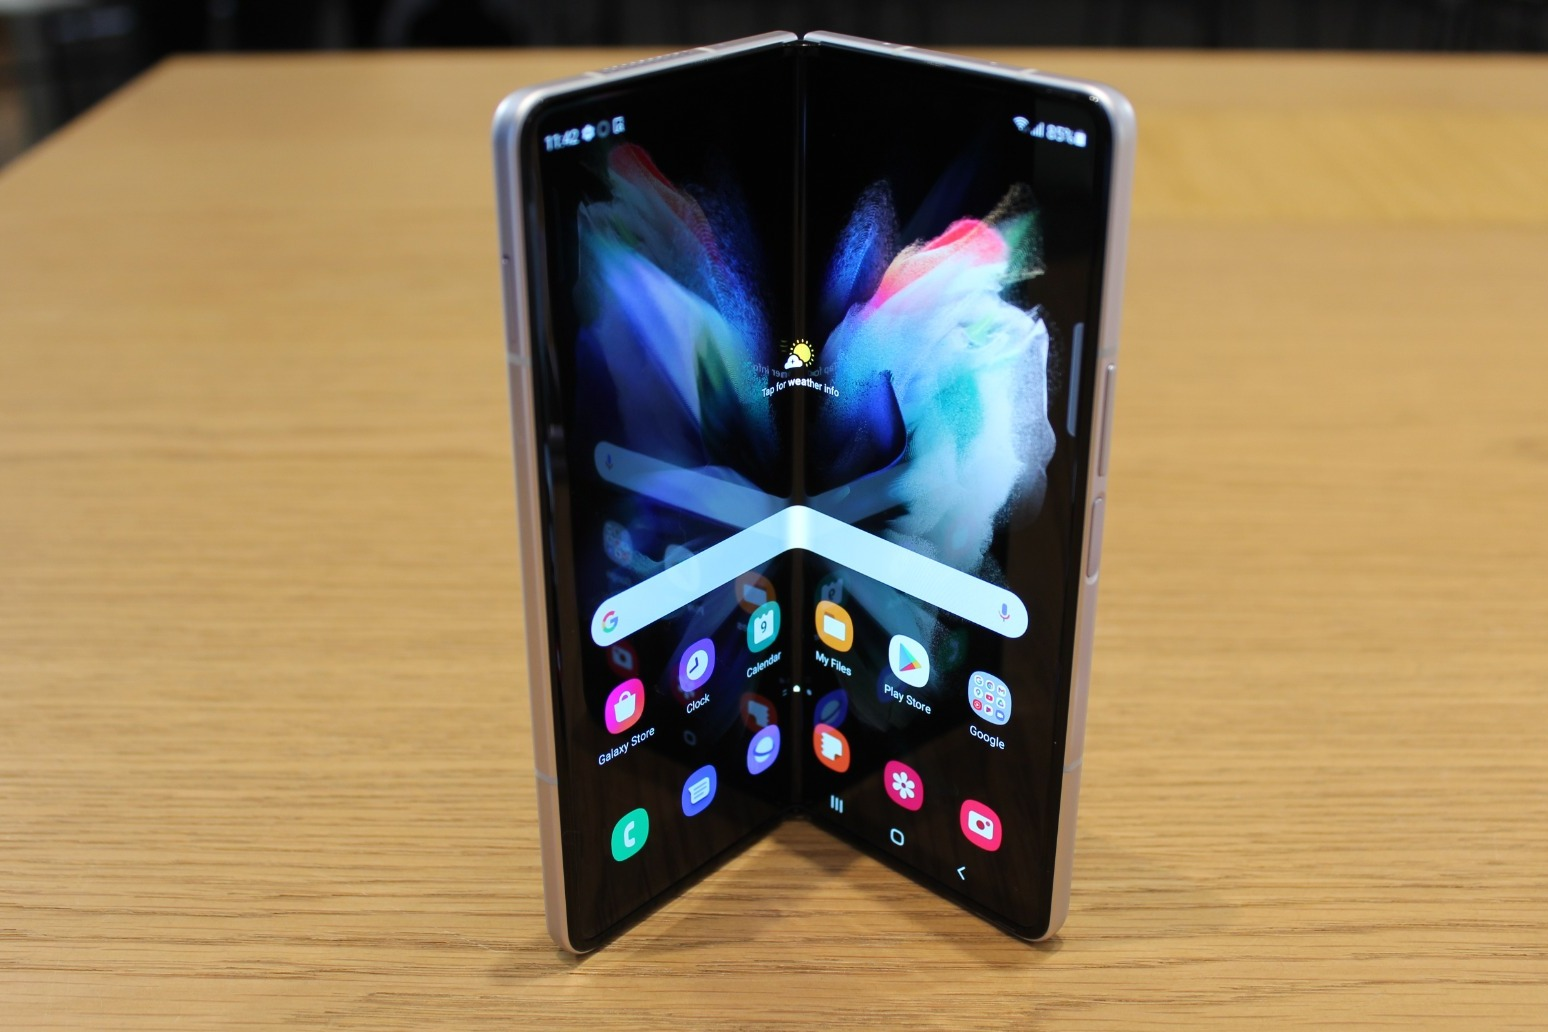 Samsung says 'the future is foldable' as it unveils Galaxy Z Fold3 and Z Flip3